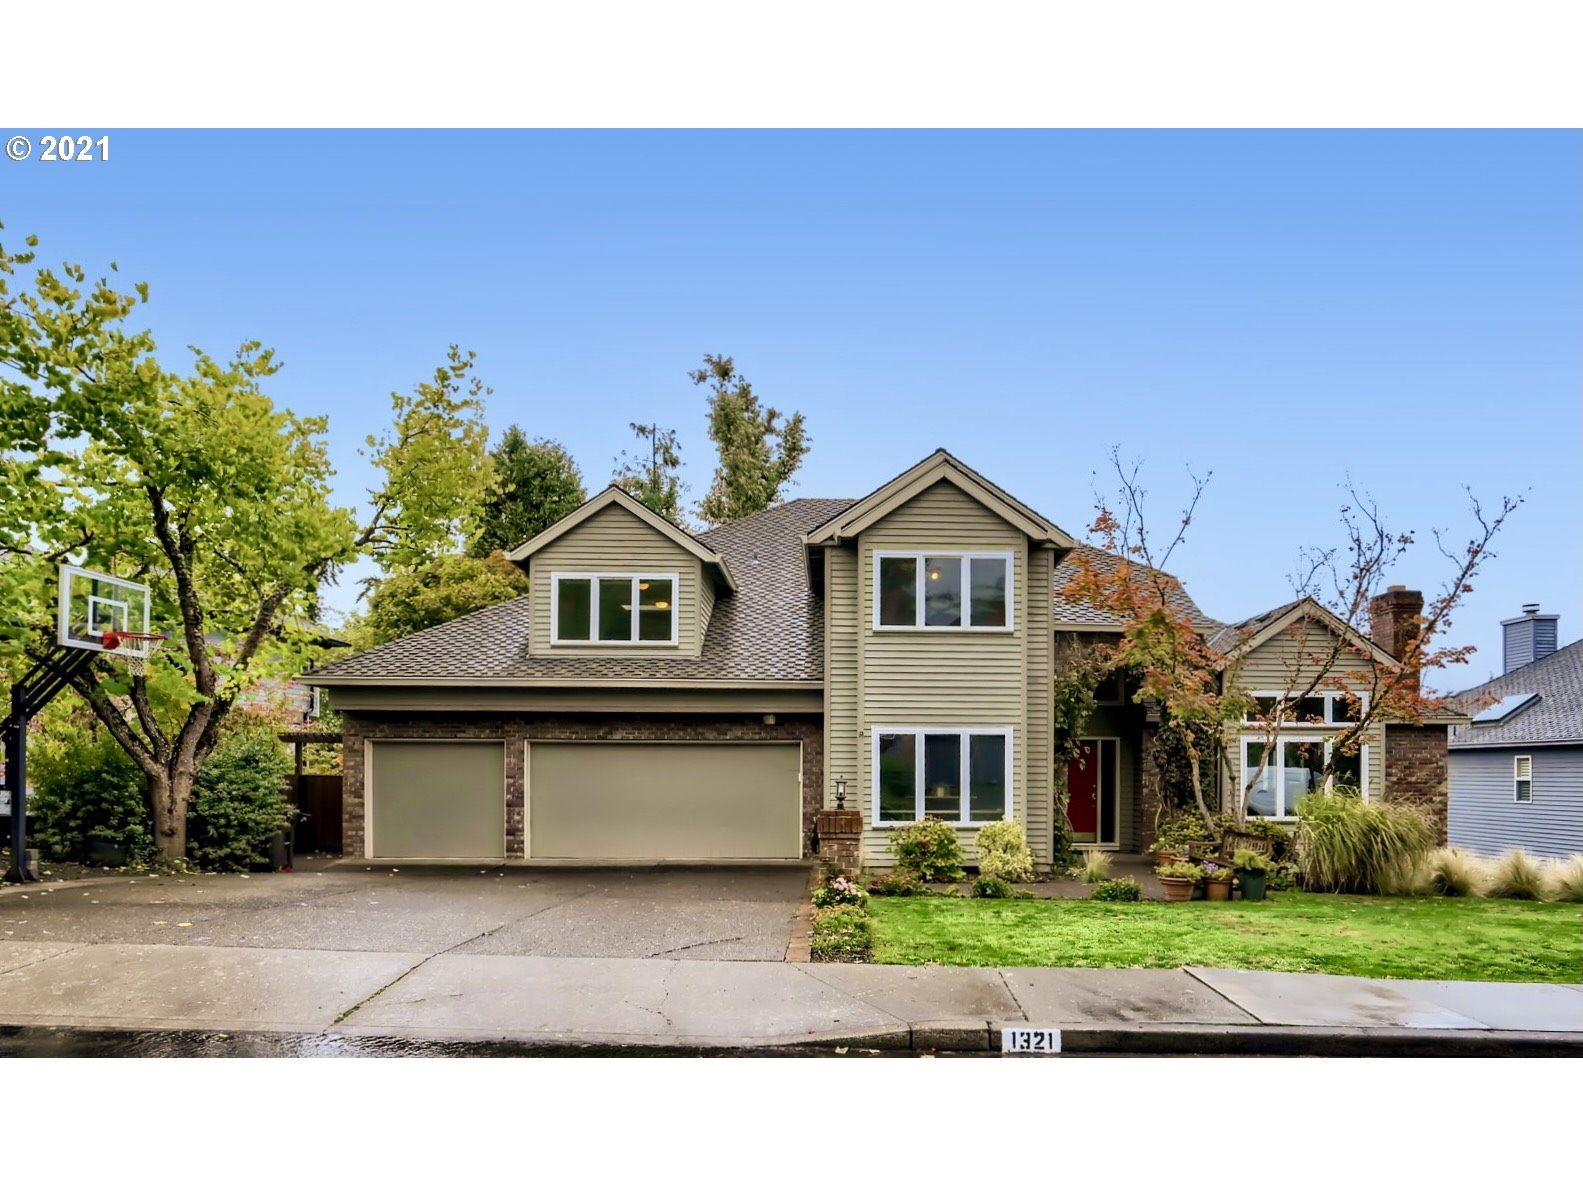 Photo of 1321 STONEHAVEN DR, West Linn, OR 97068 (MLS # 21451775)